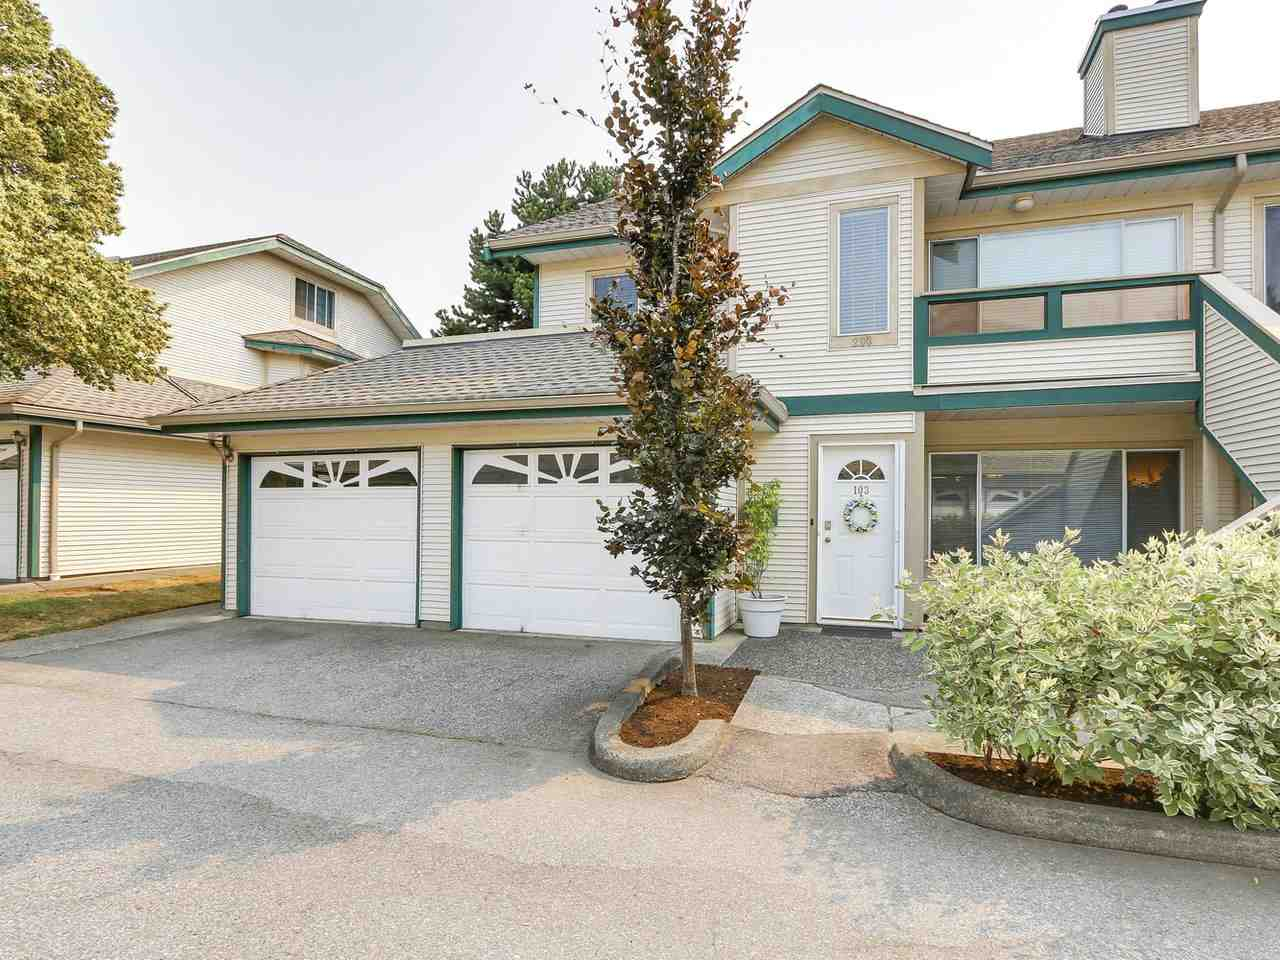 "Photo 2: 103 7837 120A Street in Surrey: West Newton Townhouse for sale in ""BERKSHYRE"" : MLS® # R2194602"